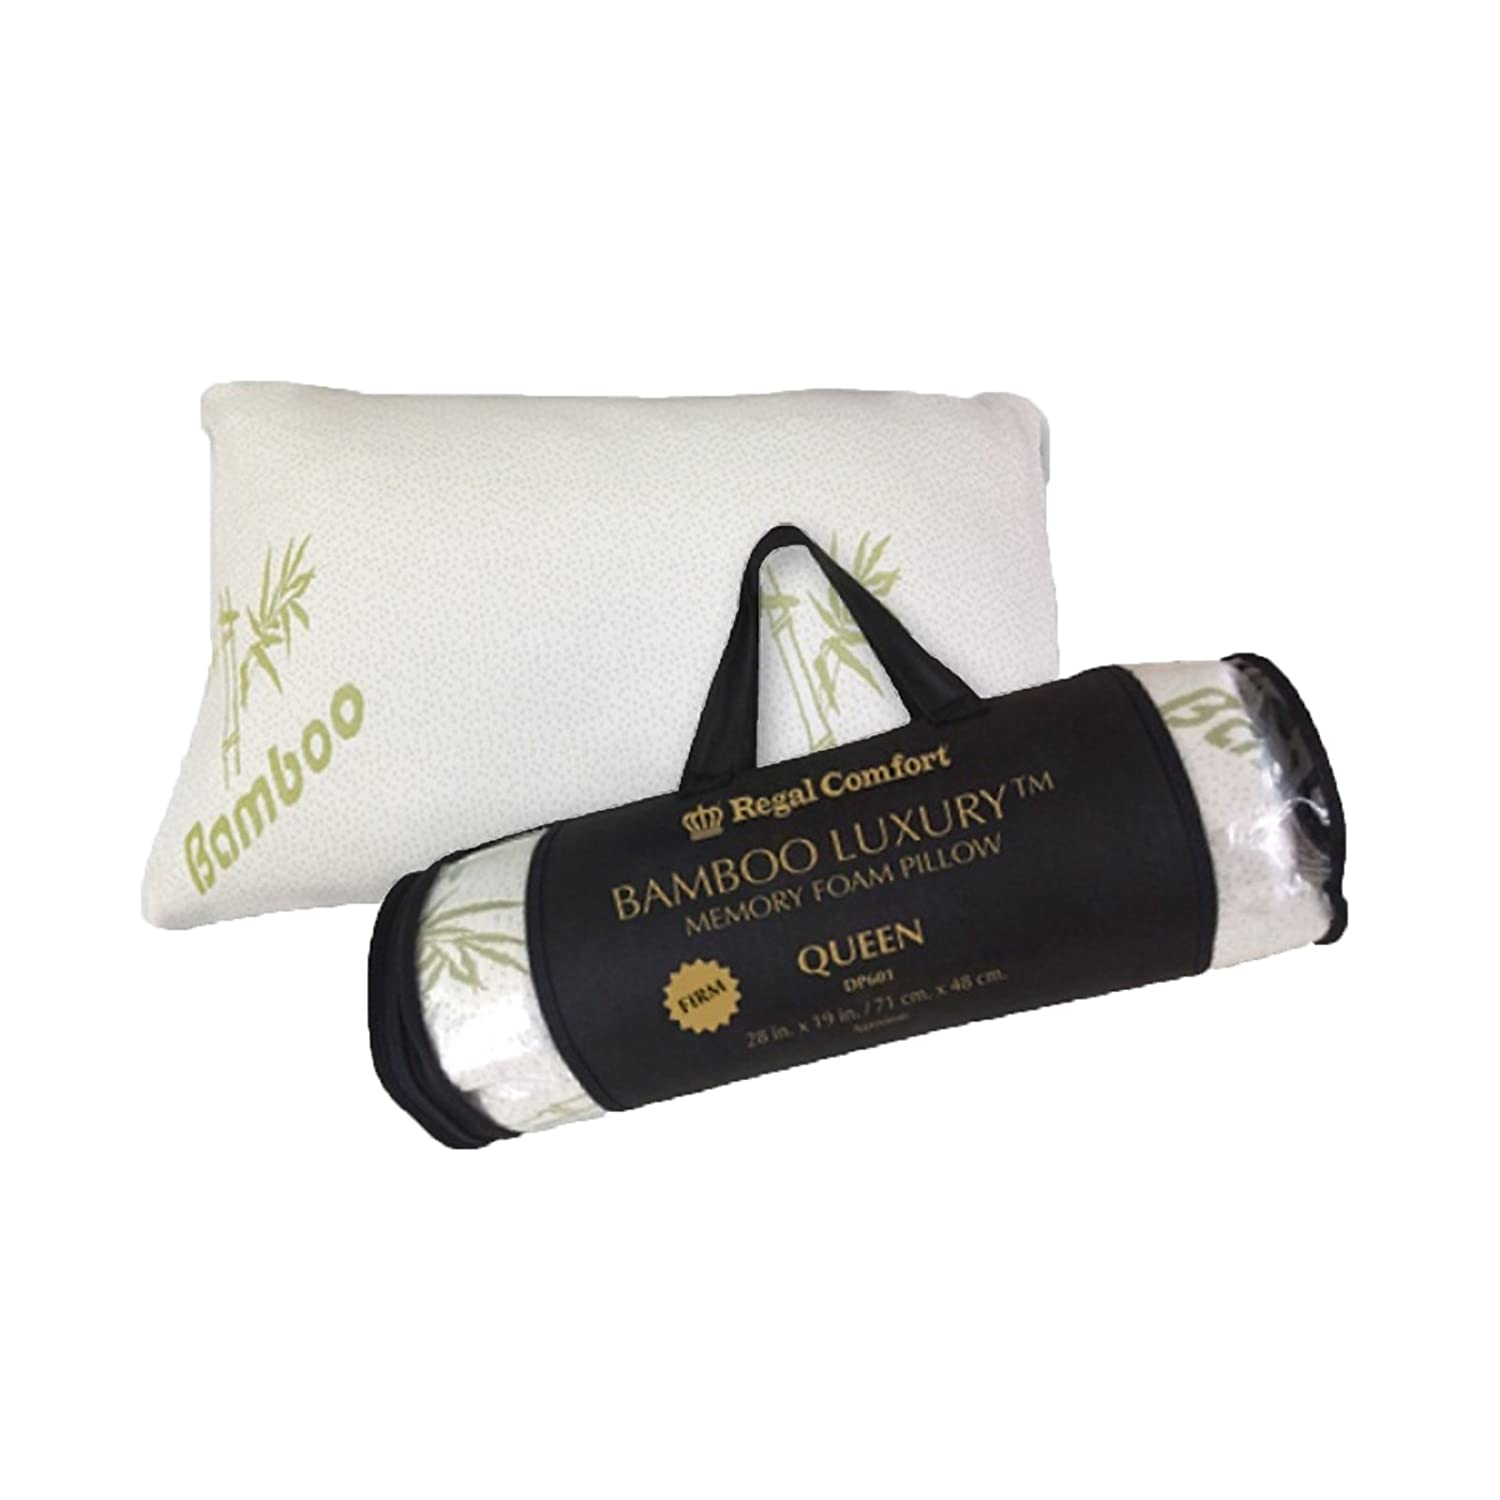 bamboo pillow hotel new foam of idea fort comfort home sleep somus decor king memory best supreme pack comforter